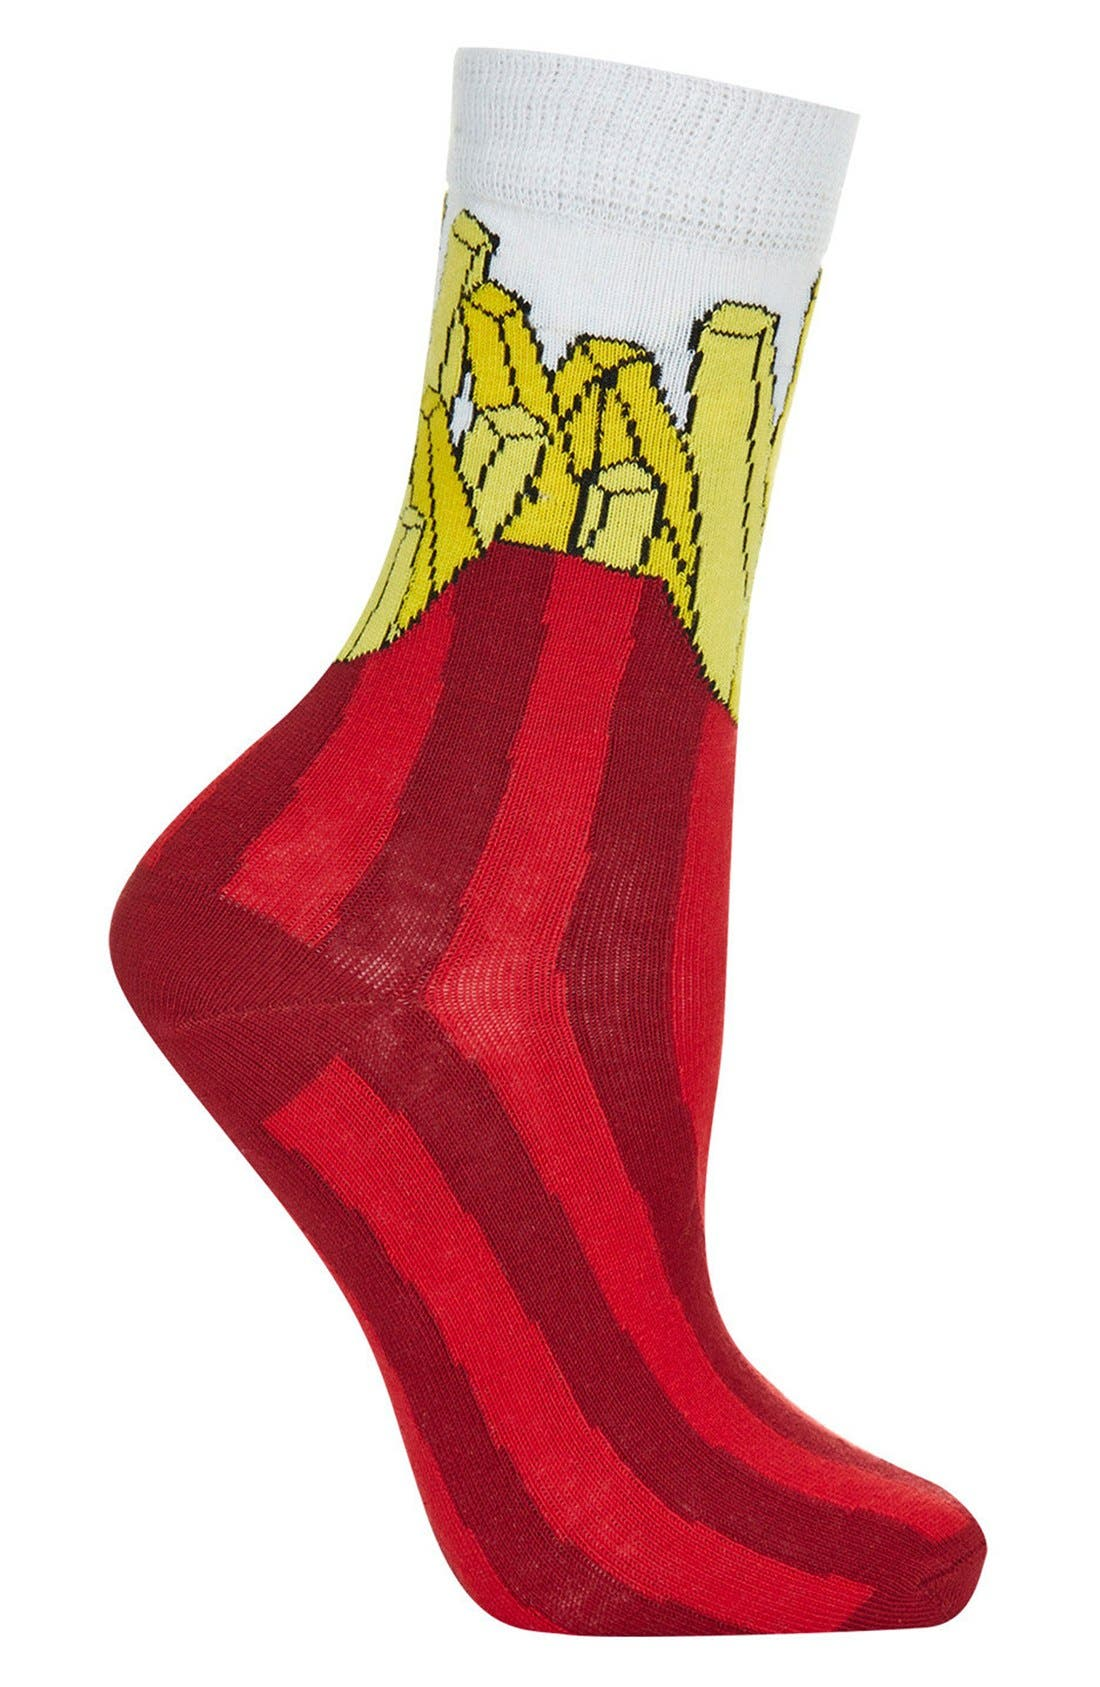 Alternate Image 1 Selected - Topshop Fries Crew Socks